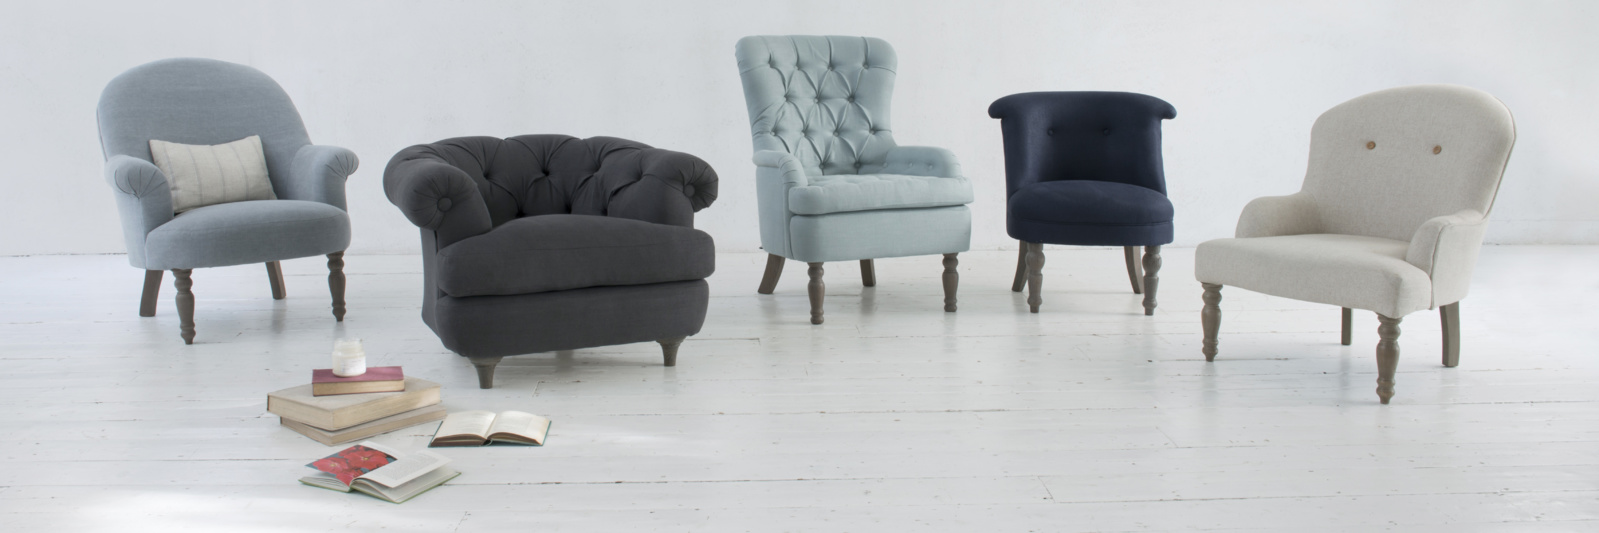 Tufted Club Chair | Unique Occasional Chairs | Occasional Chairs